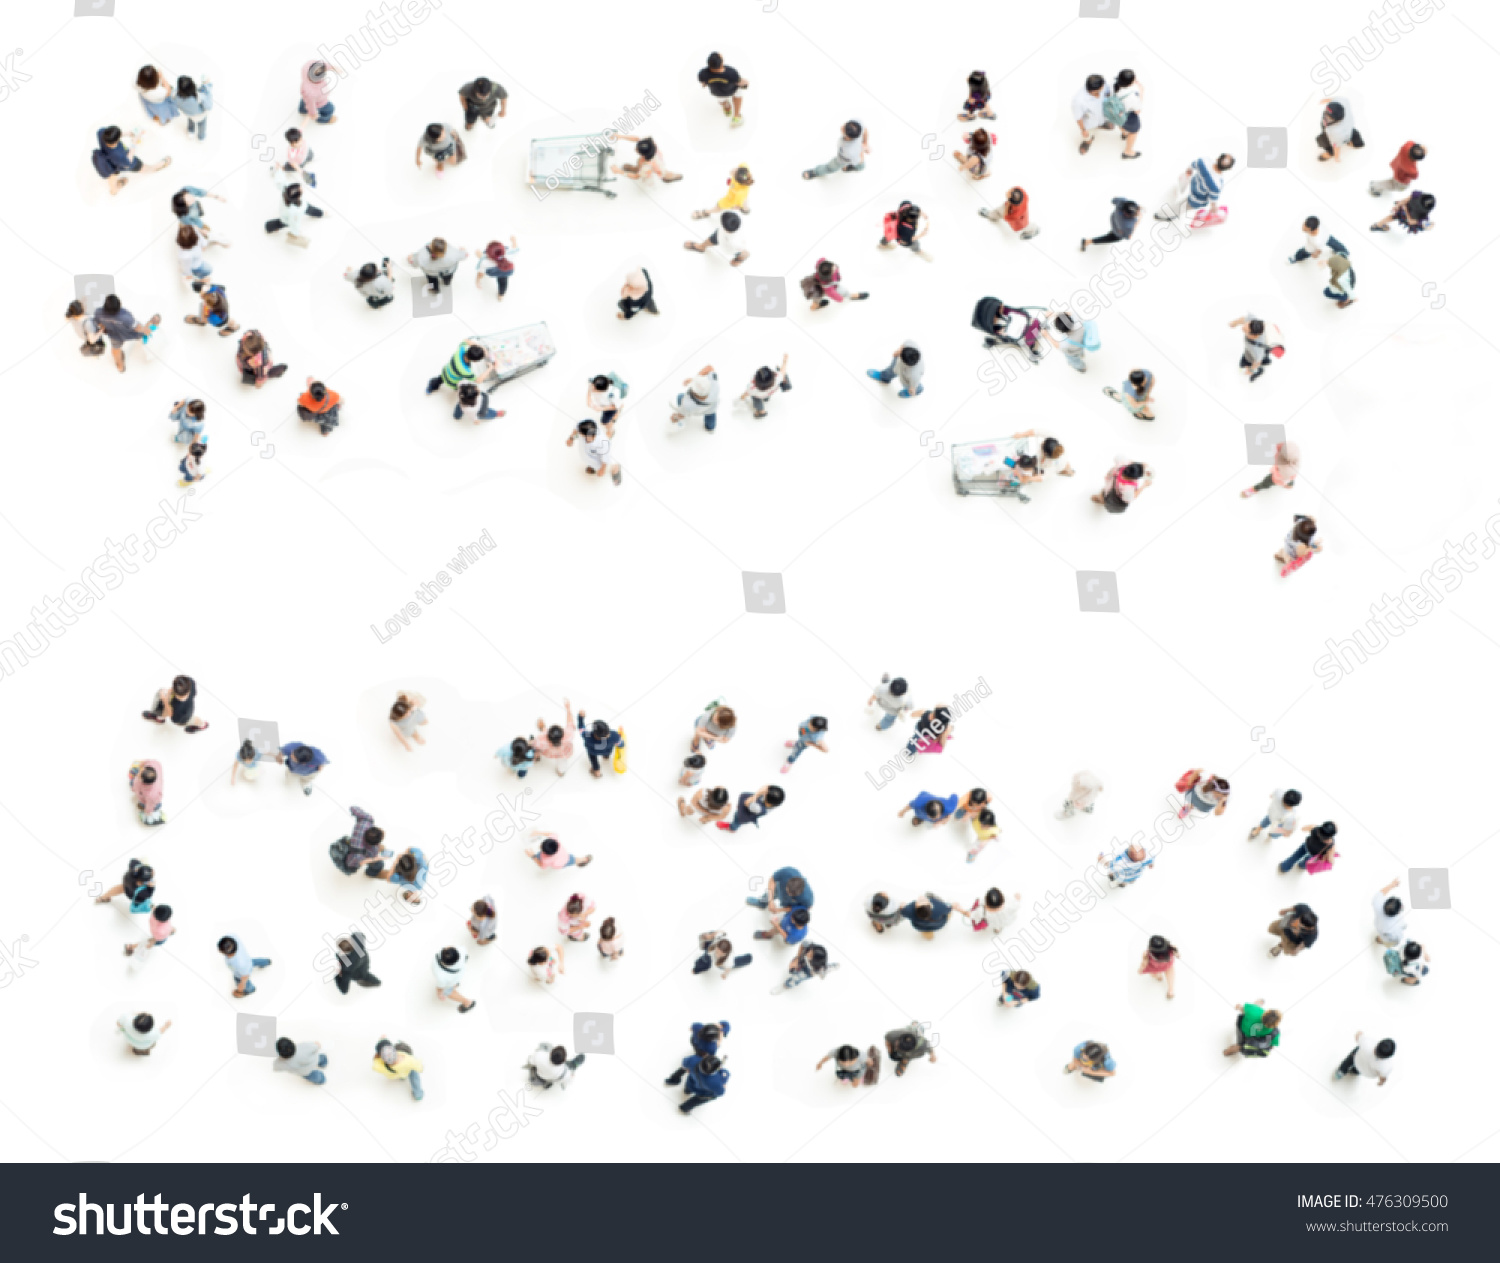 Crowd People Blurred On White Background Stock Photo (100% Legal ... for Crowd Of People Top View Png  300lyp